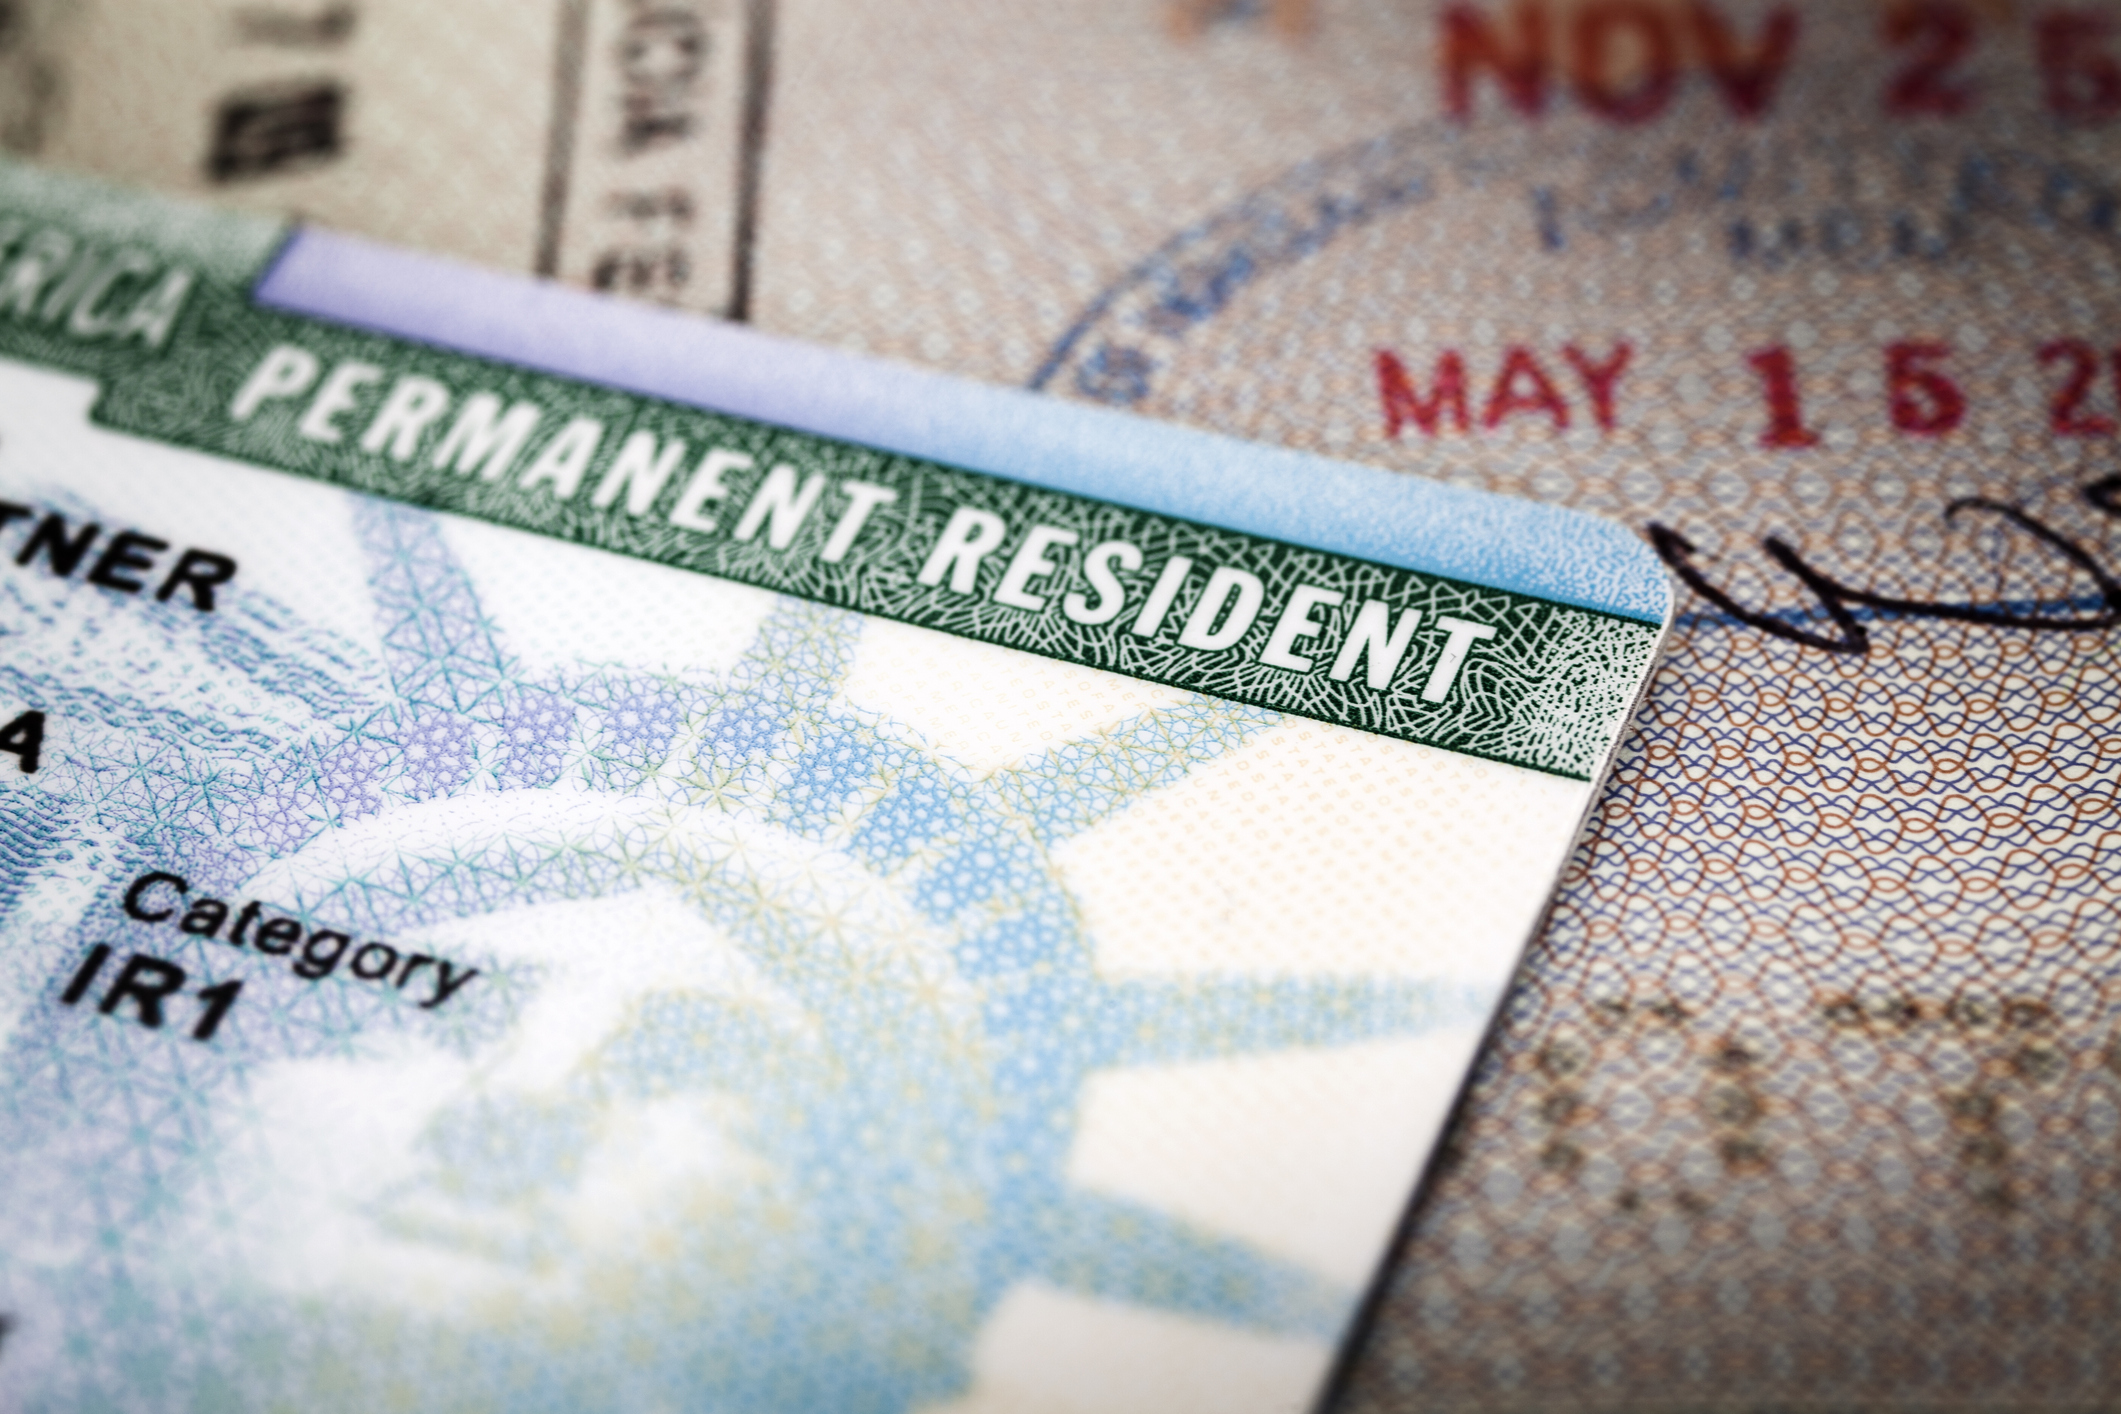 A Green Card lying on an open passport, close-up, full frame